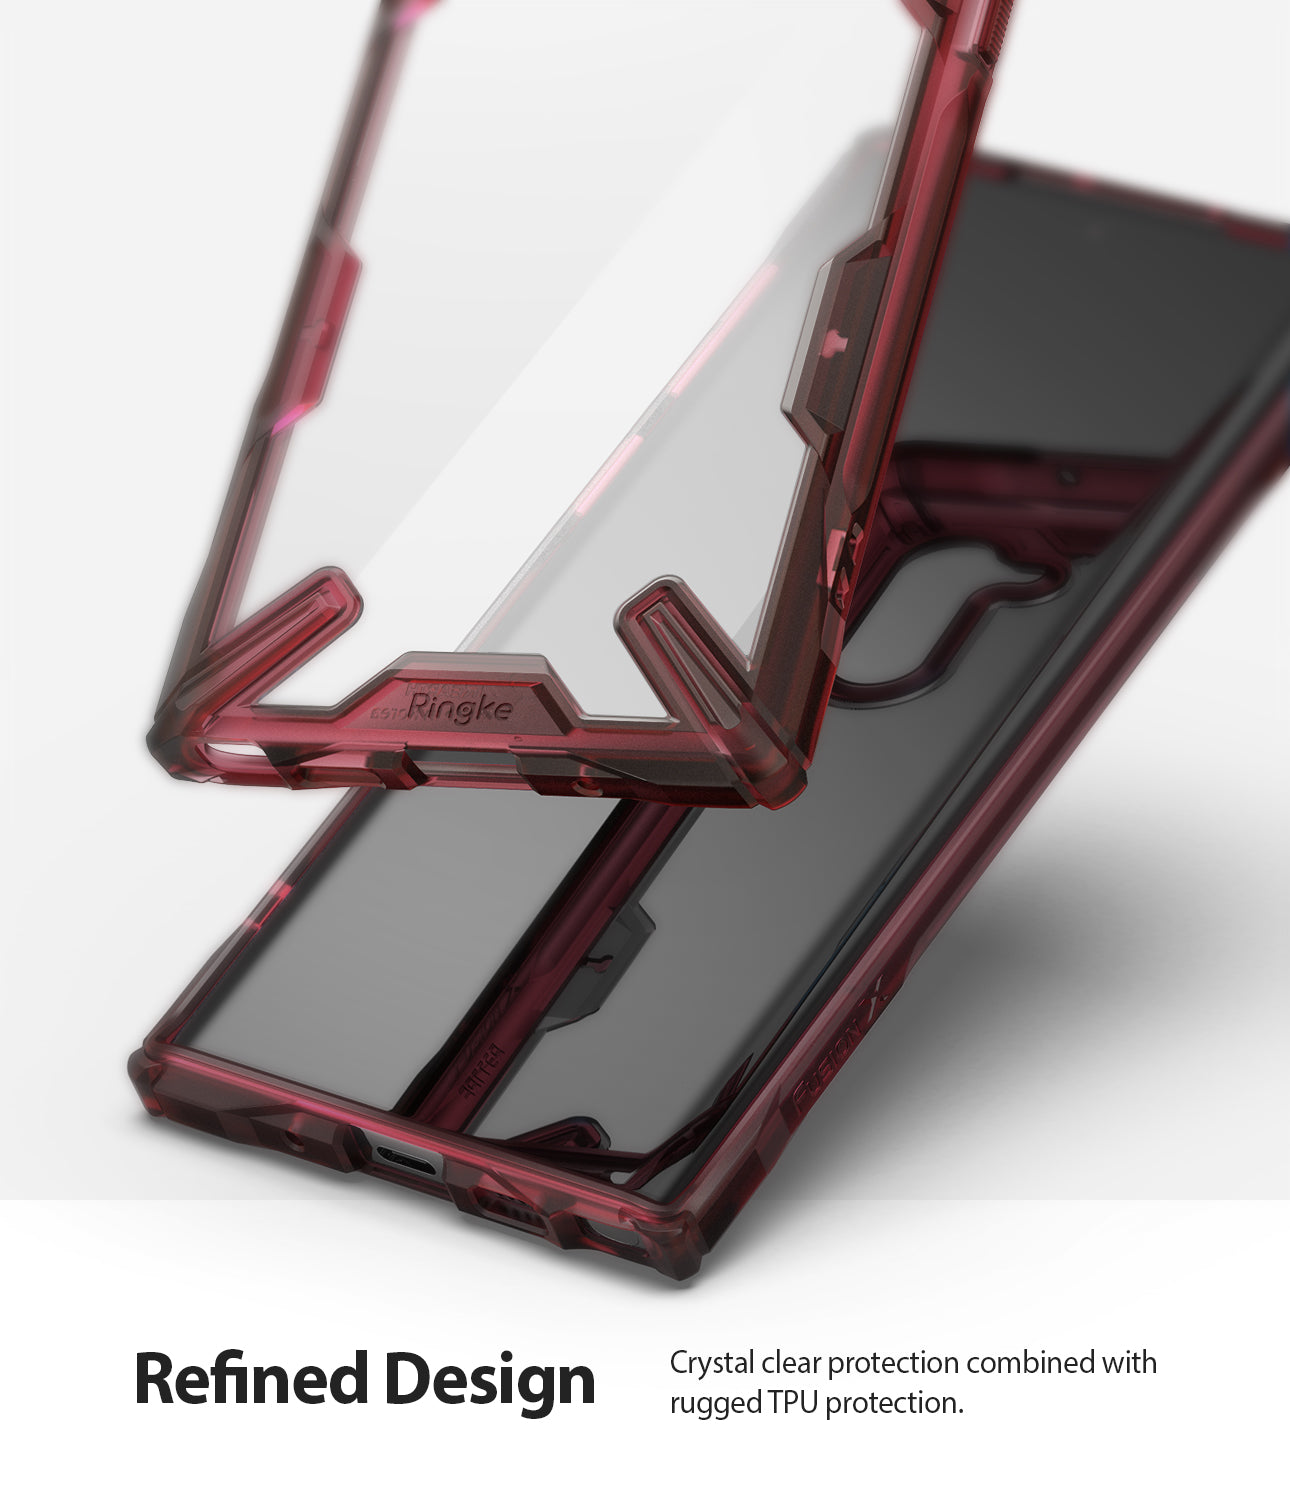 refined design with crystal clear pc back panel with impact absorbing tpu bumper